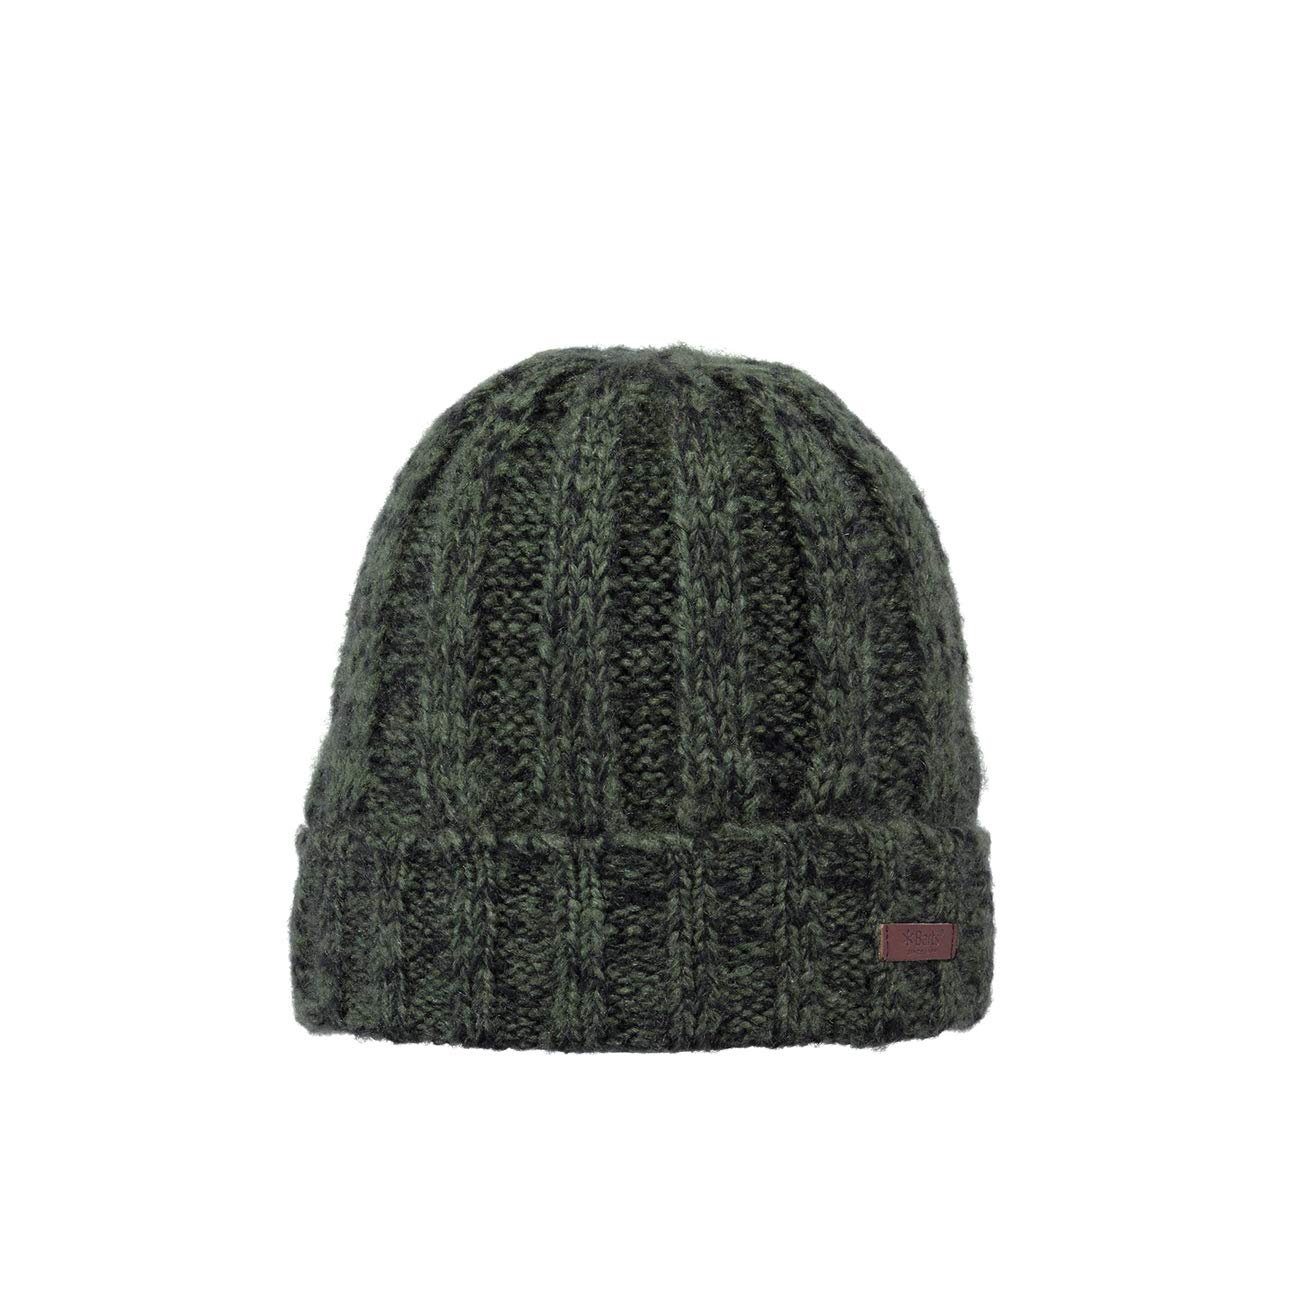 Barts Elroi Beanie  Amazon.co.uk  Sports   Outdoors d59cdb2821a3